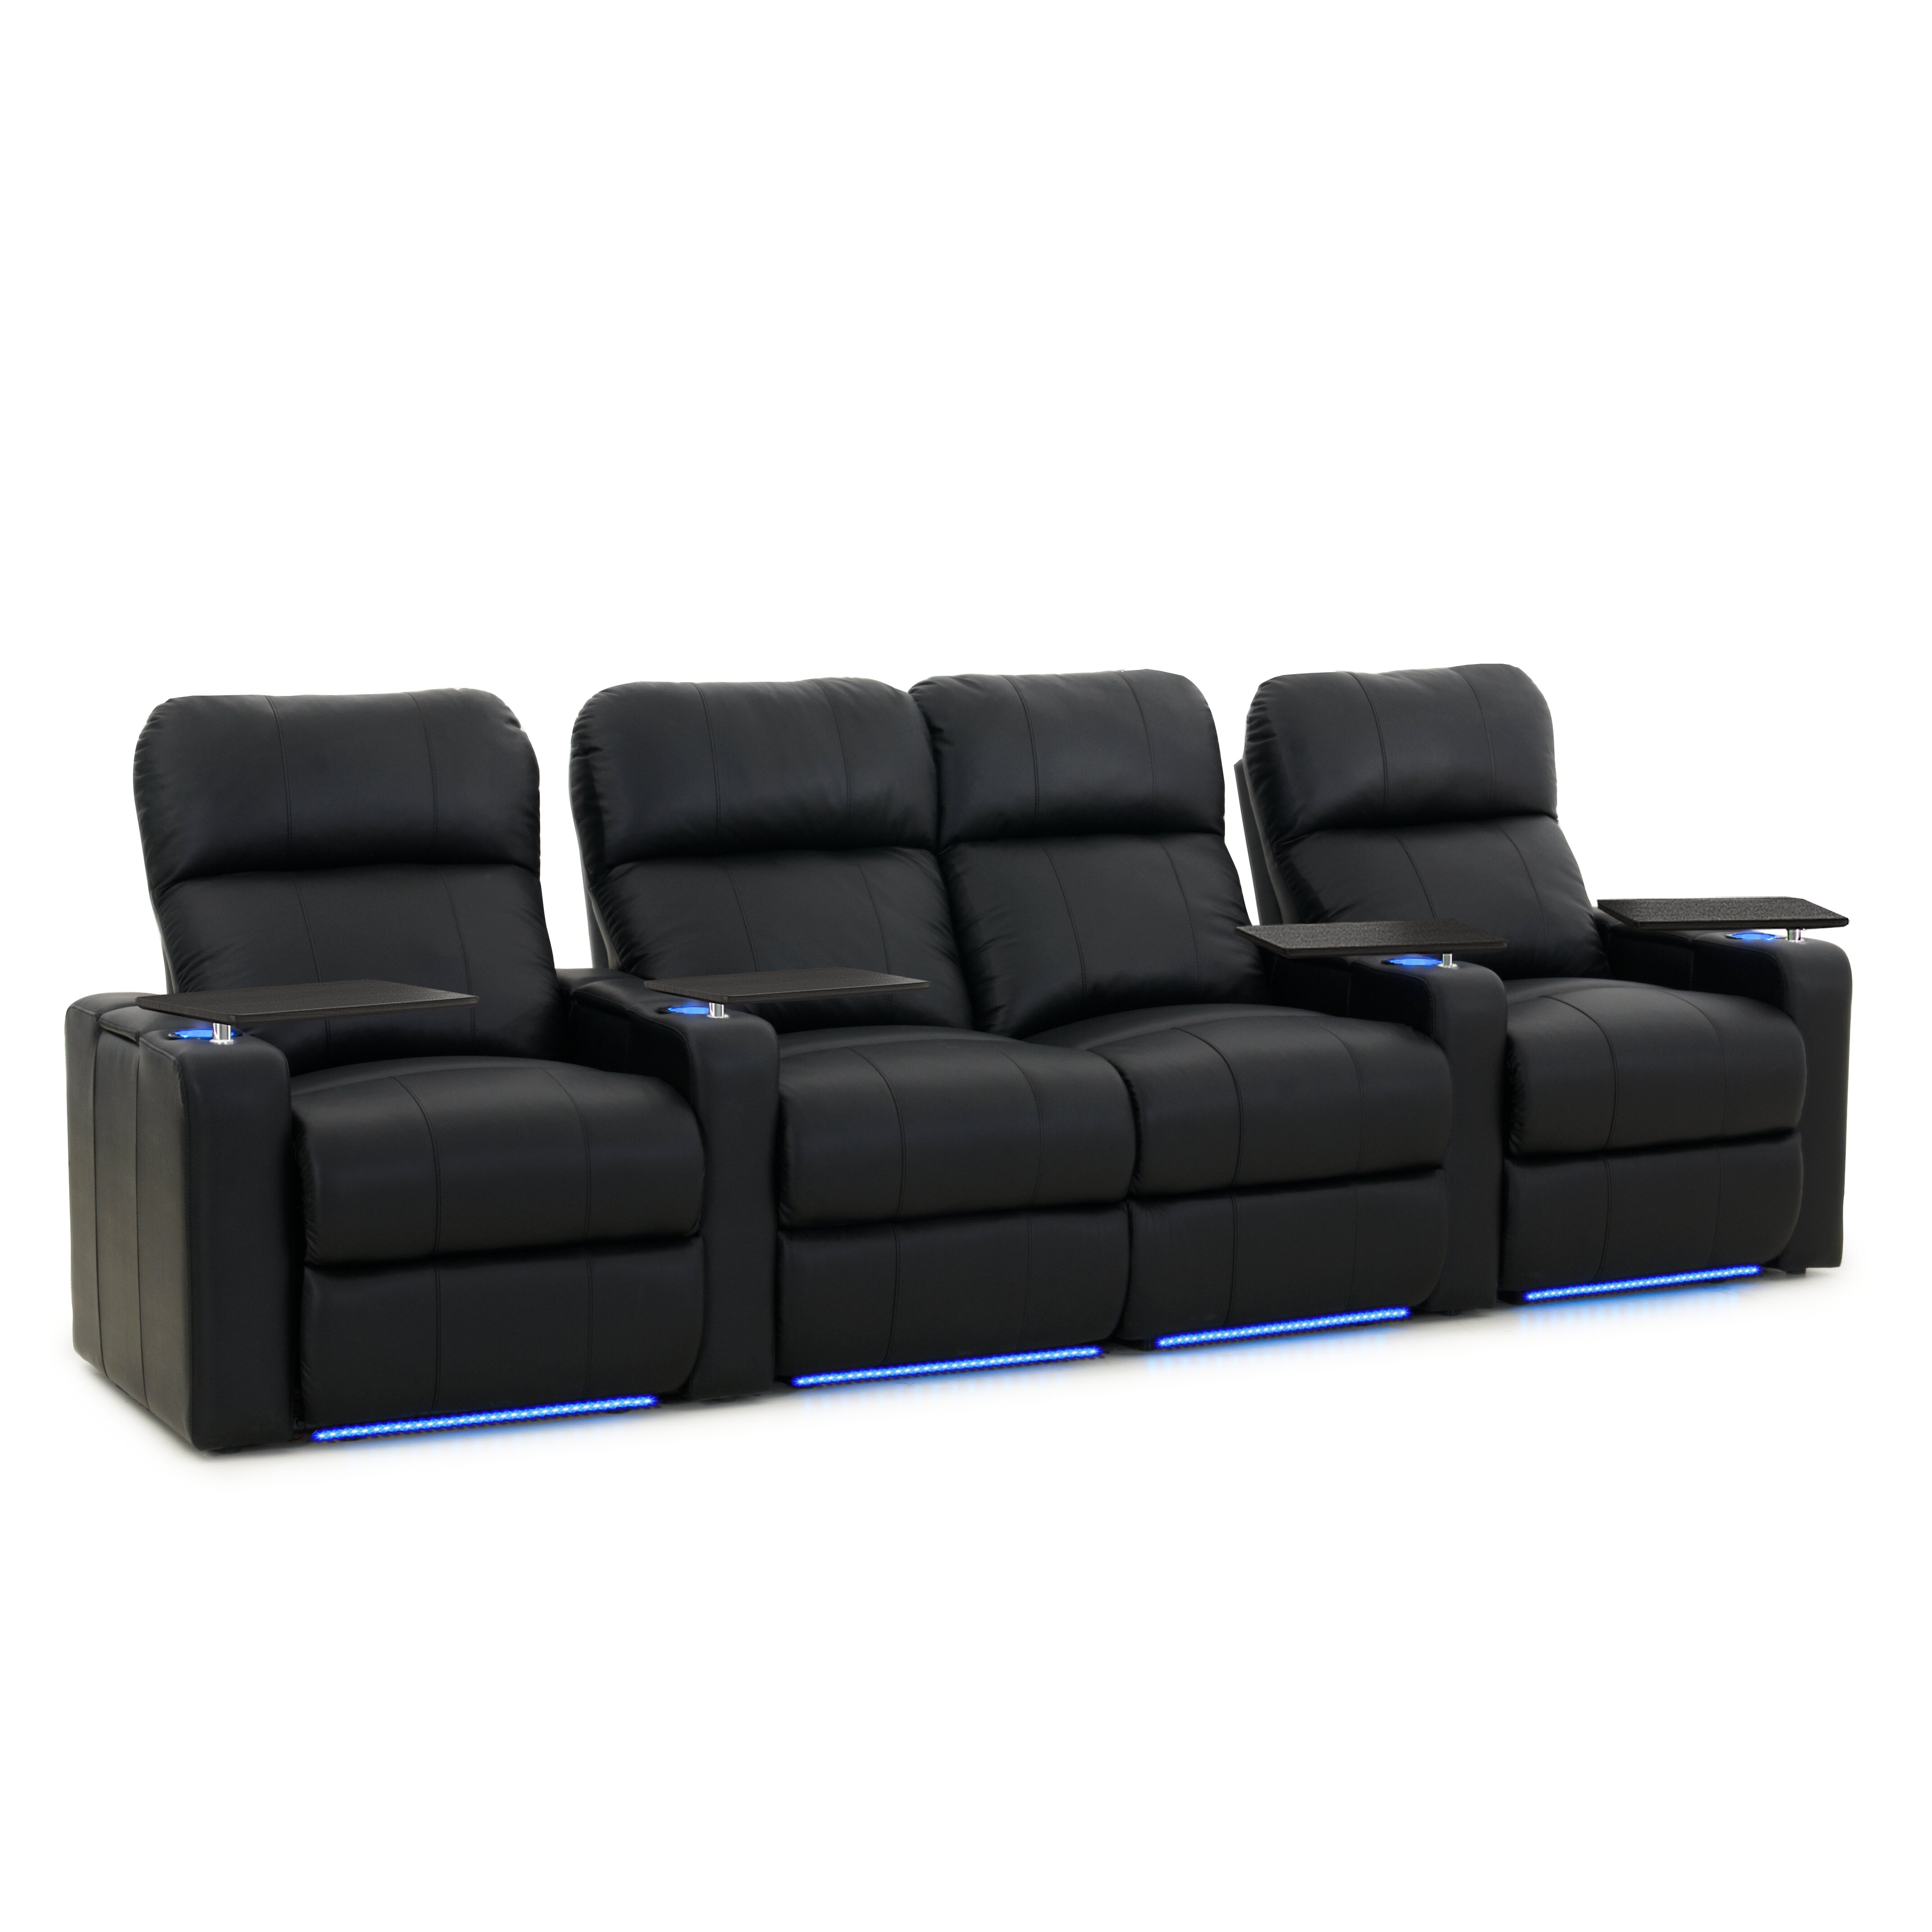 Octaneseating Turbo Xl700 Home Theater Loveseat Row Of 4 Reviews Wayfair